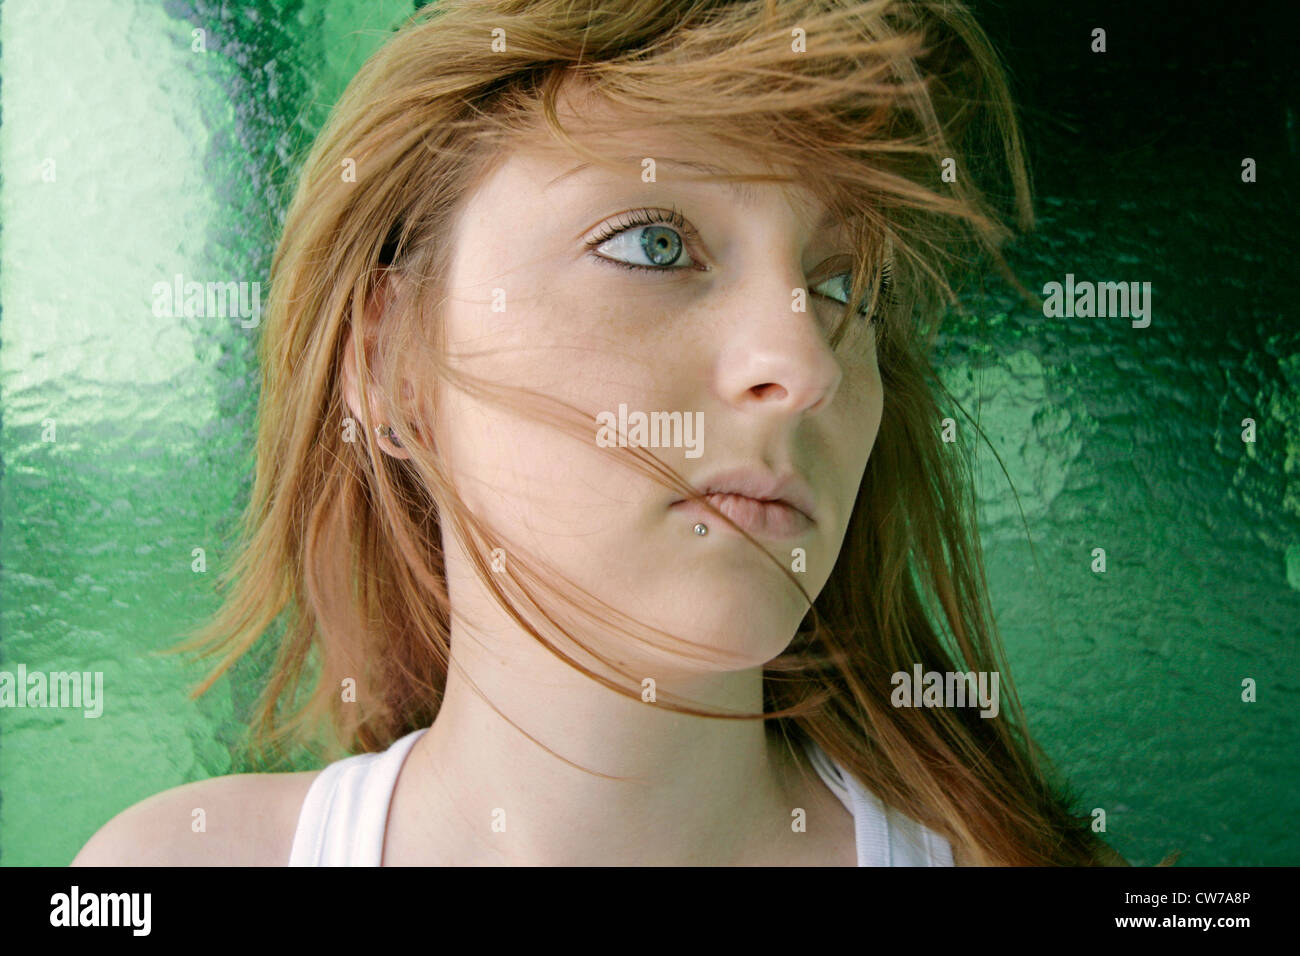 portrait of redheaded young woman, Germany Stock Photo